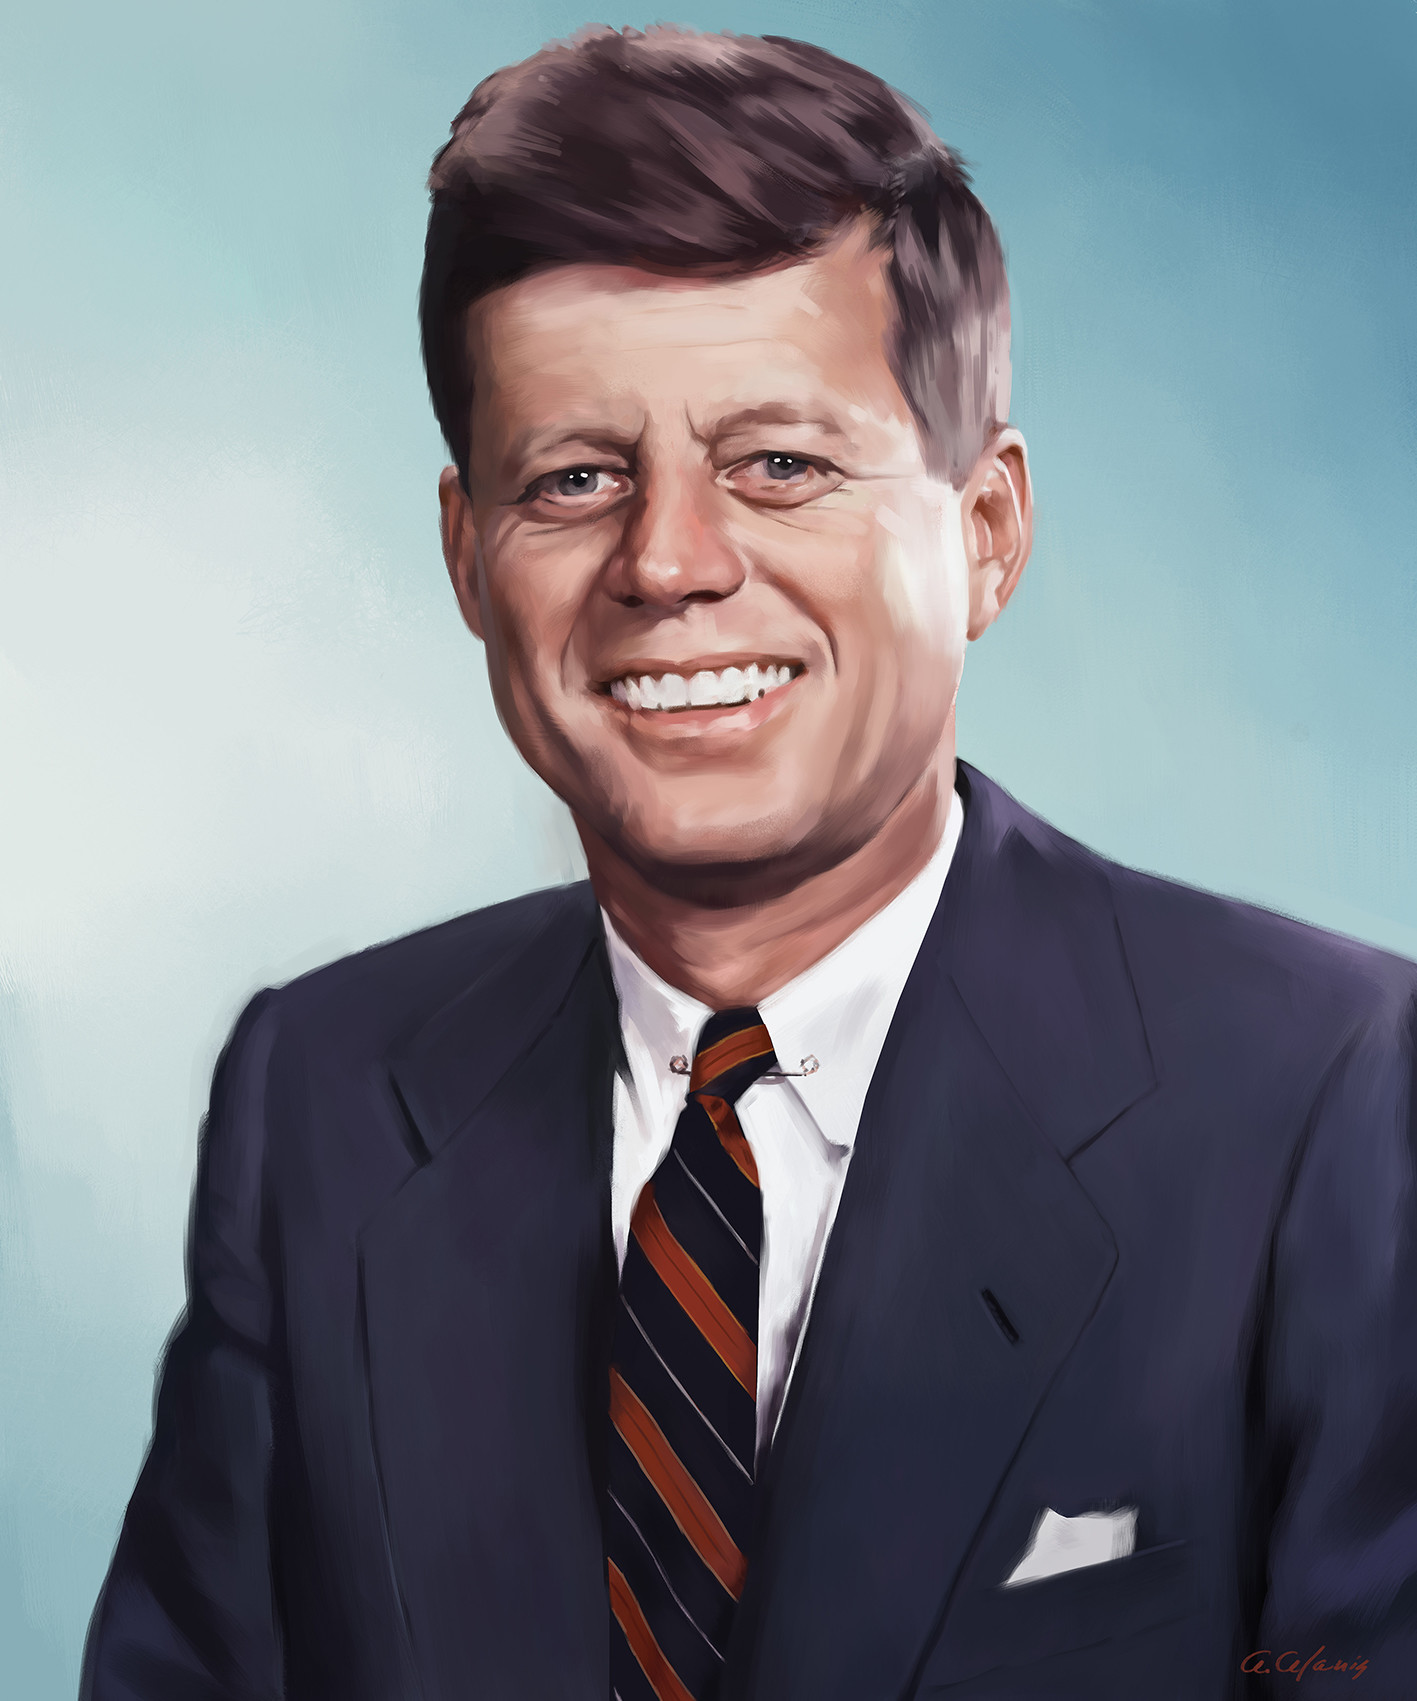 a biography of john f kennedy as the 35th president of the united states John f kennedy was the 35th president of the united states he served from 1961-1963 he was born on may 29, 1917 in brookline however, he used his great charm, used his biography and used a large amount of his family's money to win the primary democratic votes in a few small states.